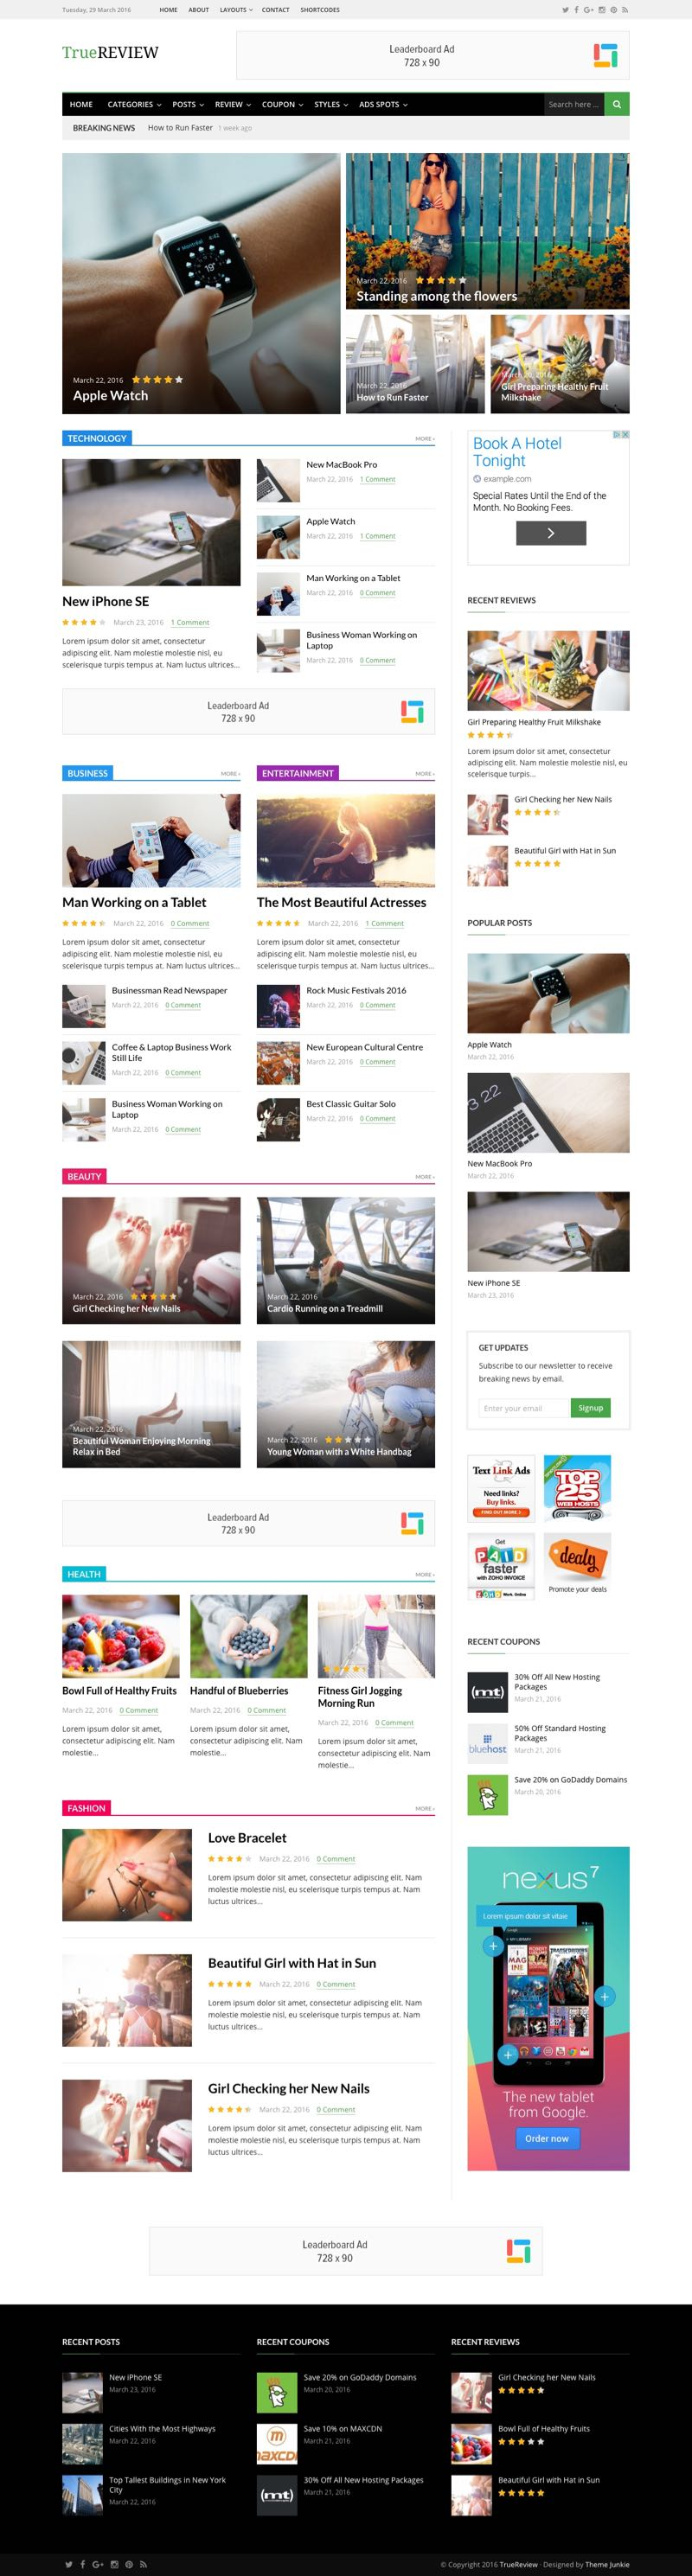 TrueReview WordPress Editorial Reviews Theme